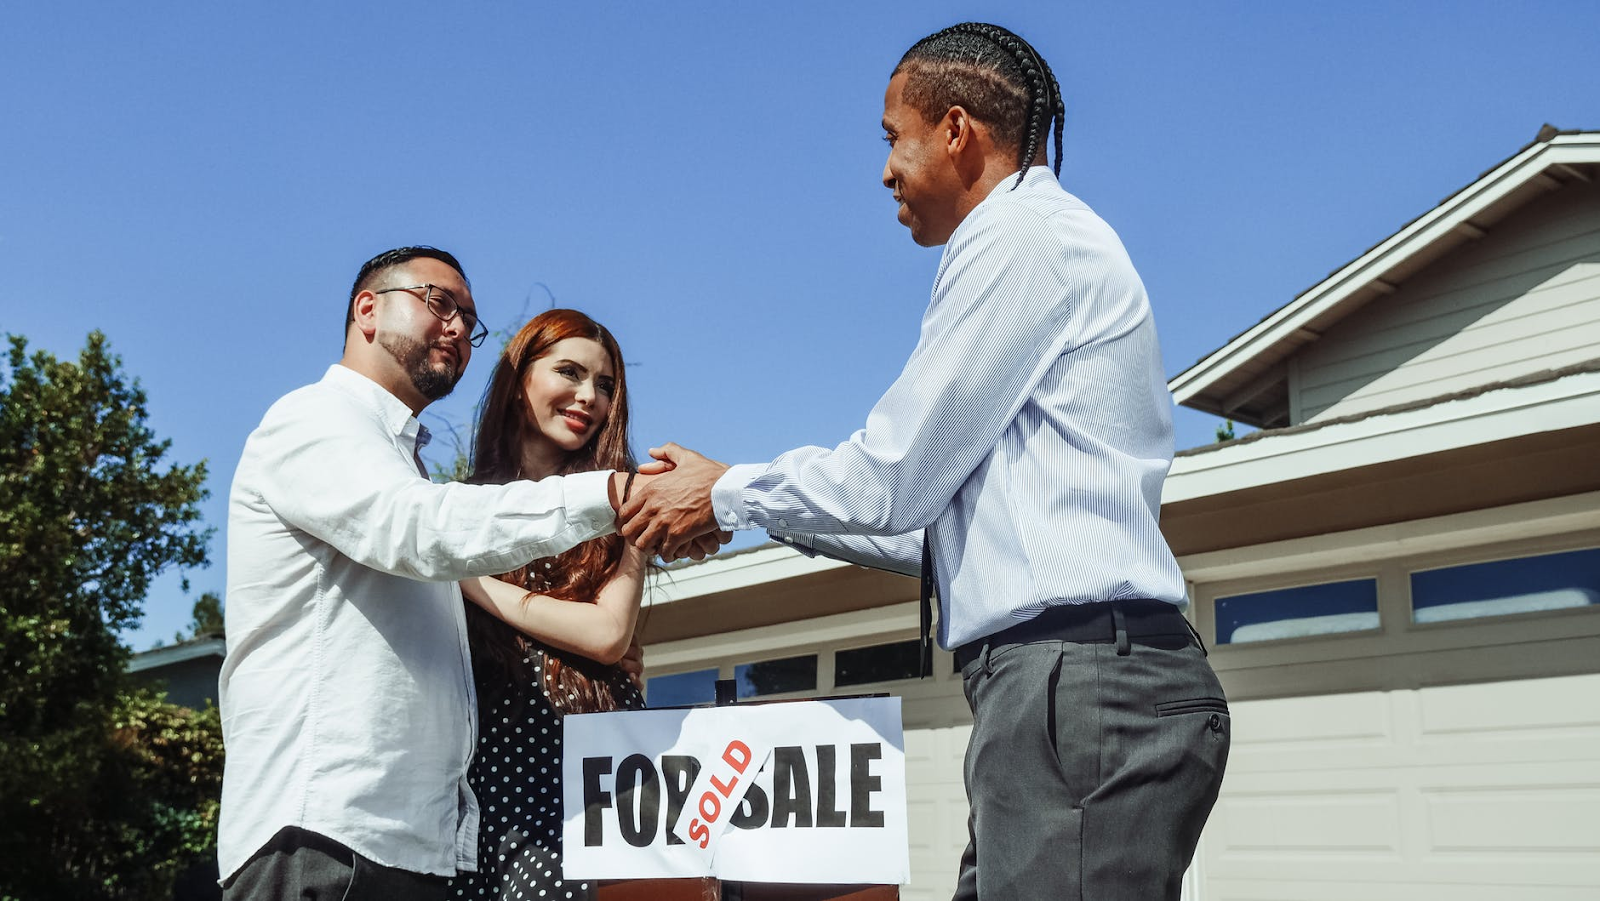 Real estate agent shaking hands with a couple after purchasing a home